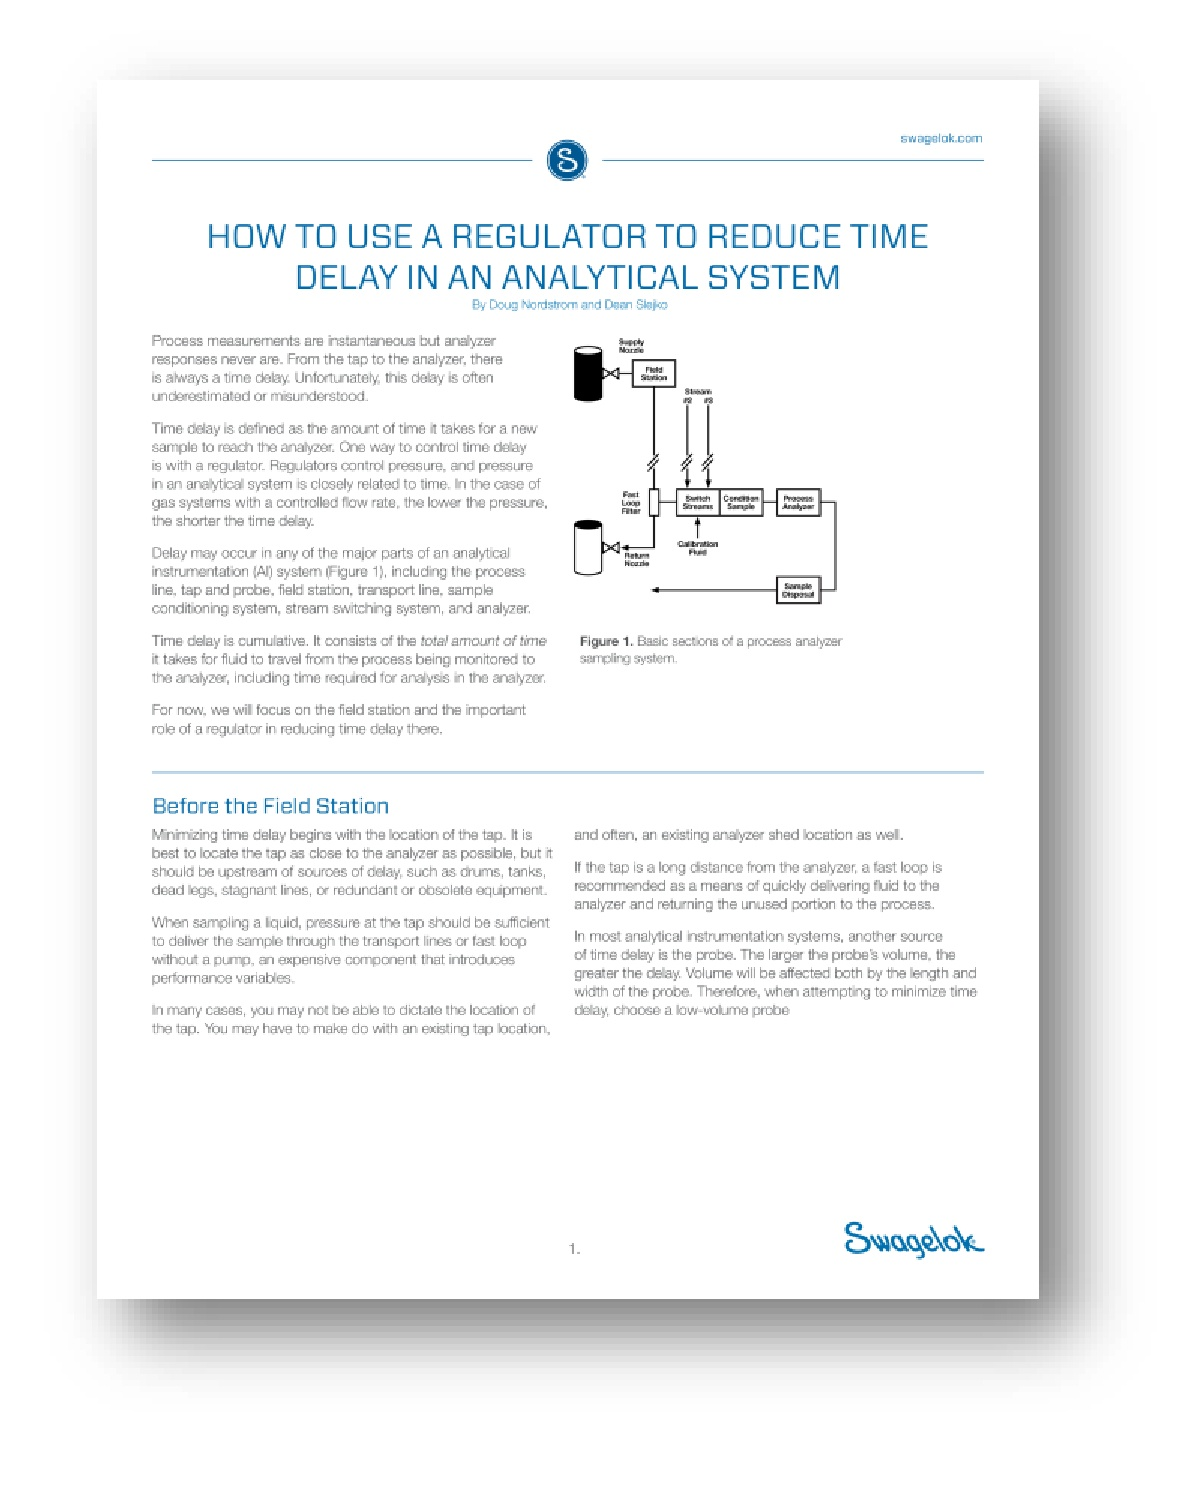 Using a Regulator to Reduce Time Delay in an Analytical System